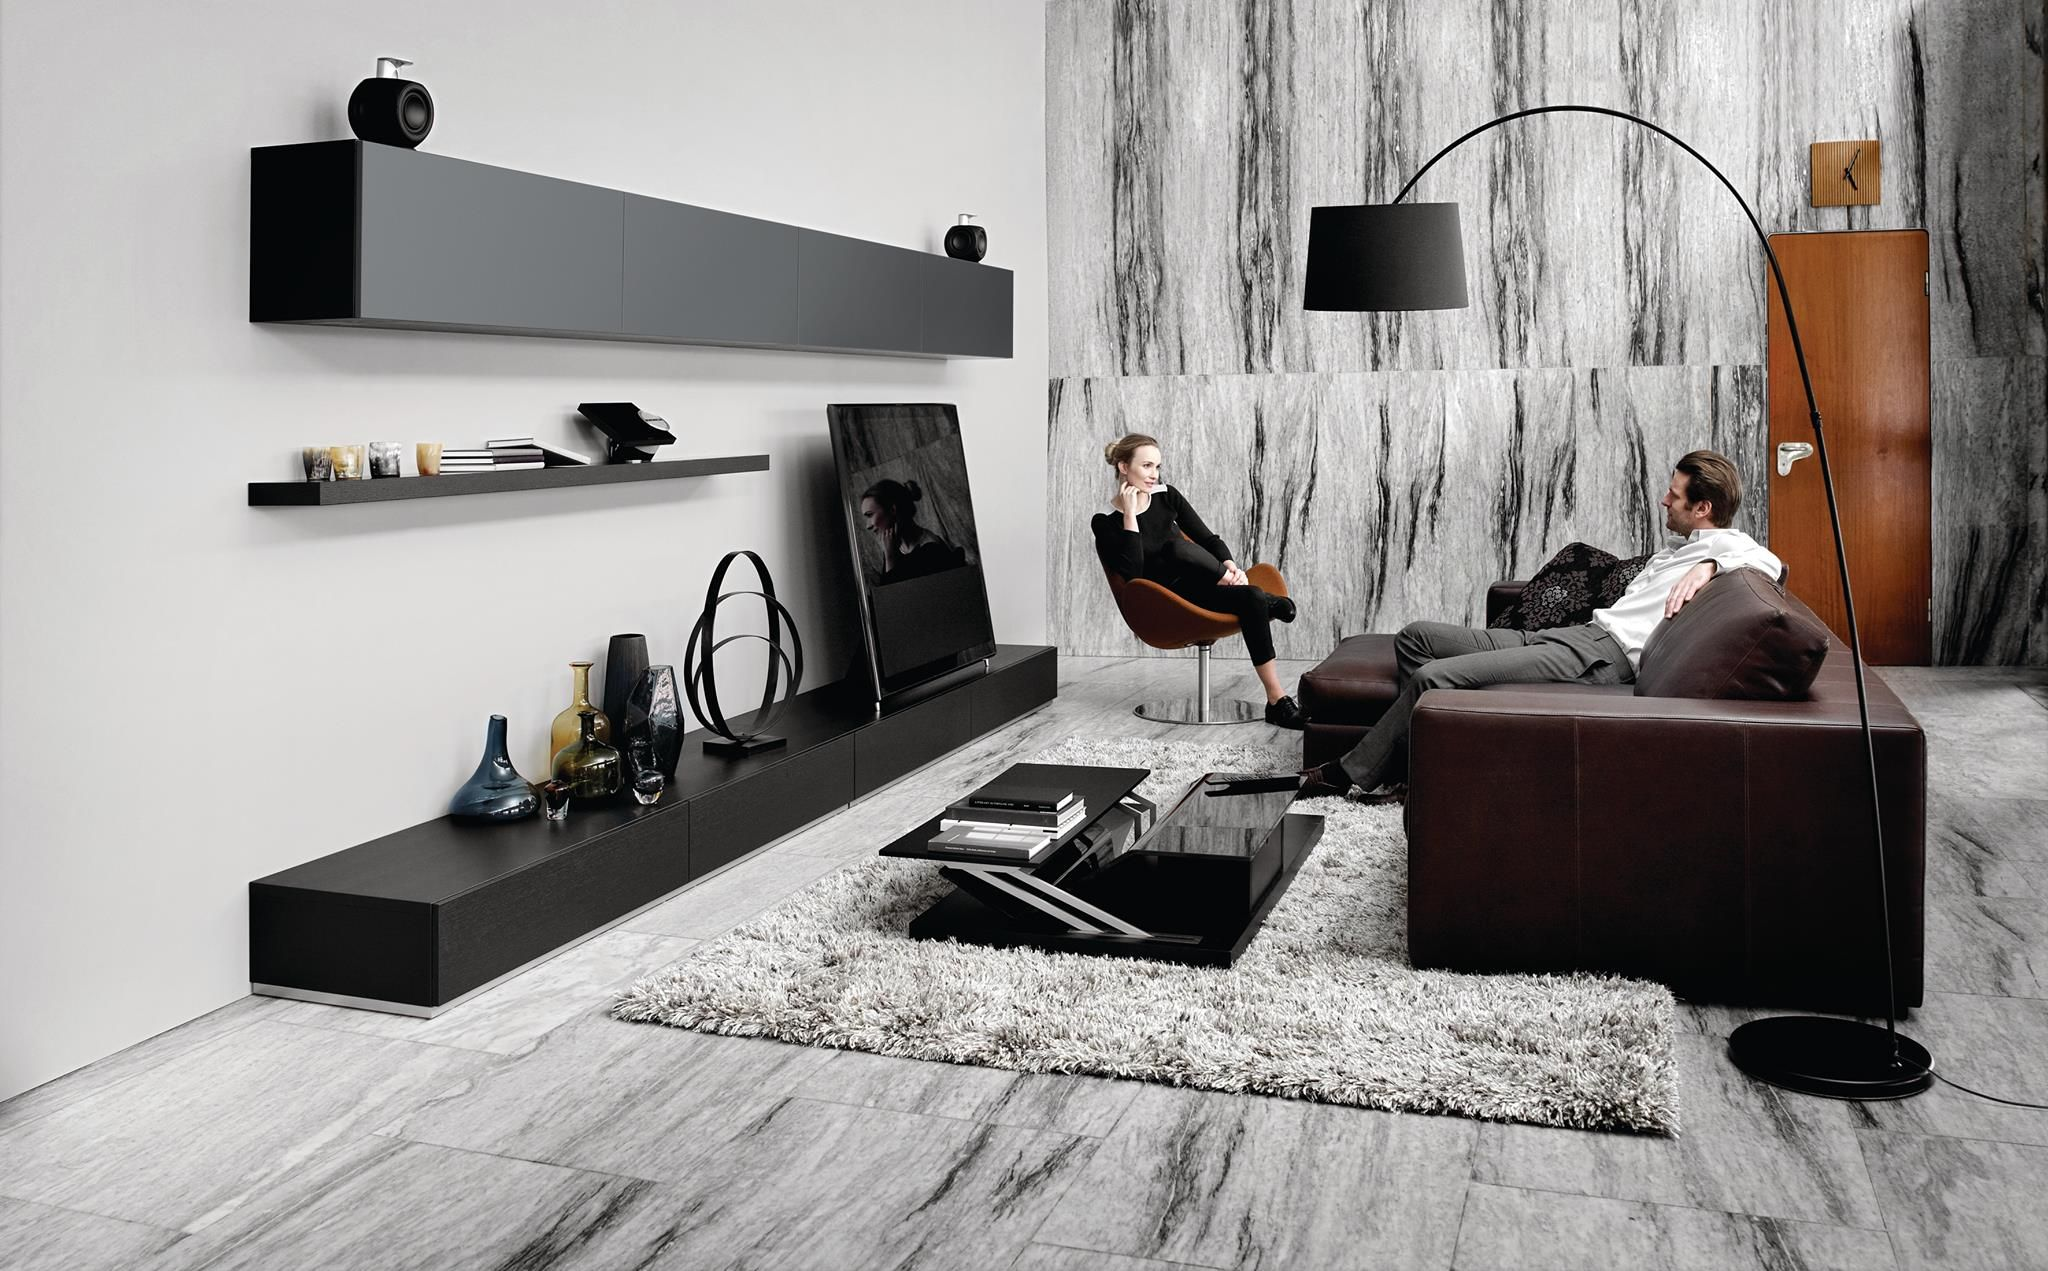 Discount Mobili Napoli Design Wandmeubel Home Space Boconcept Living Room Modern